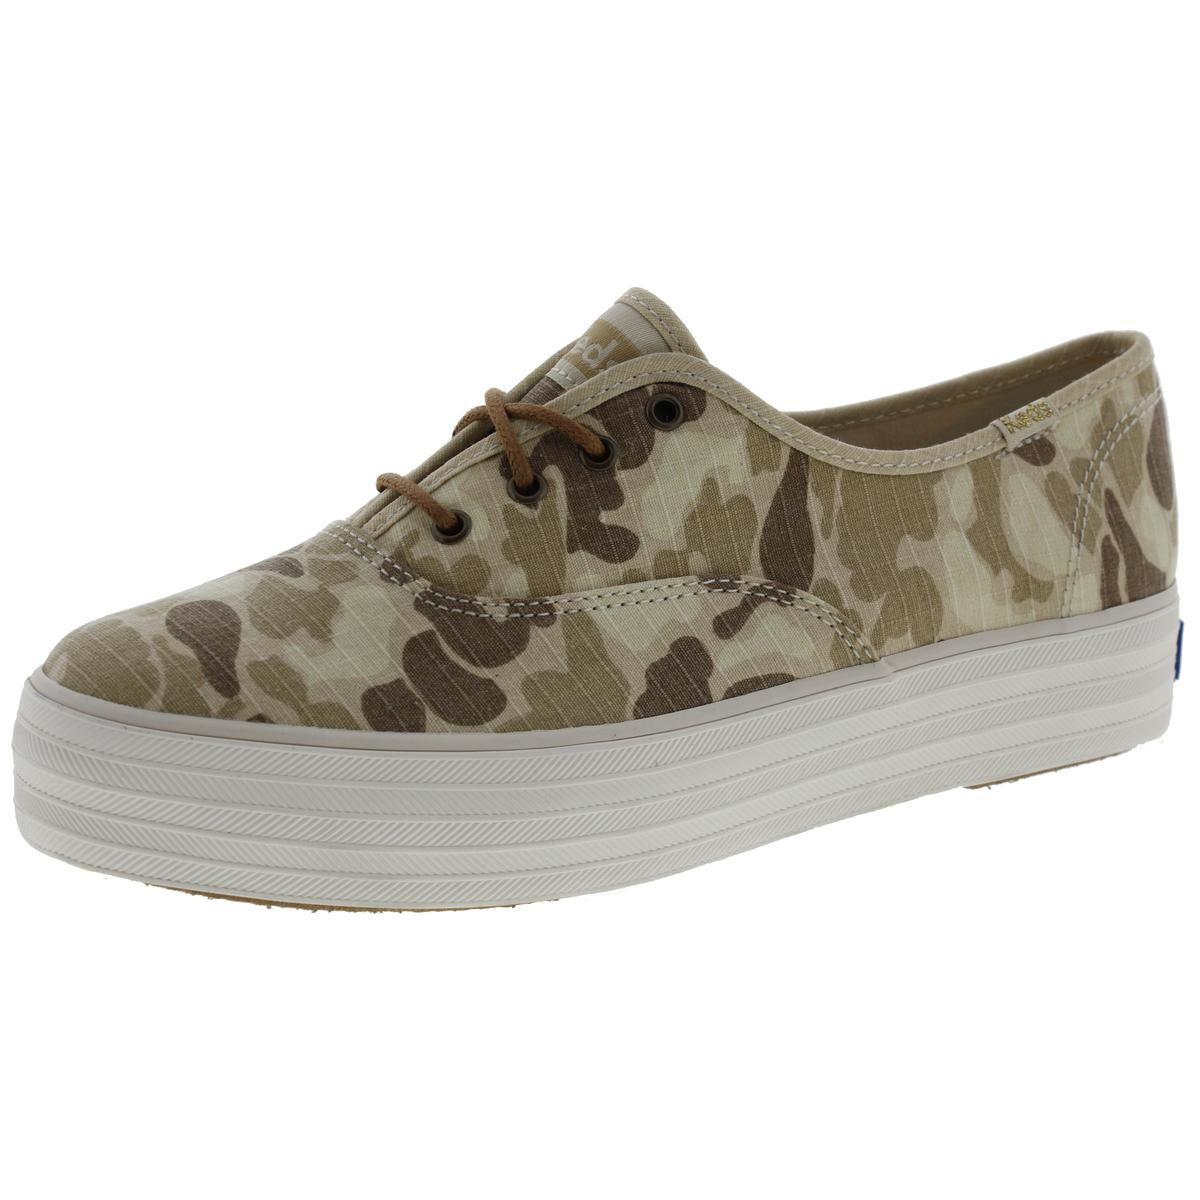 Keds Womens Canvas Camouflage Fashion Sneakers by Keds